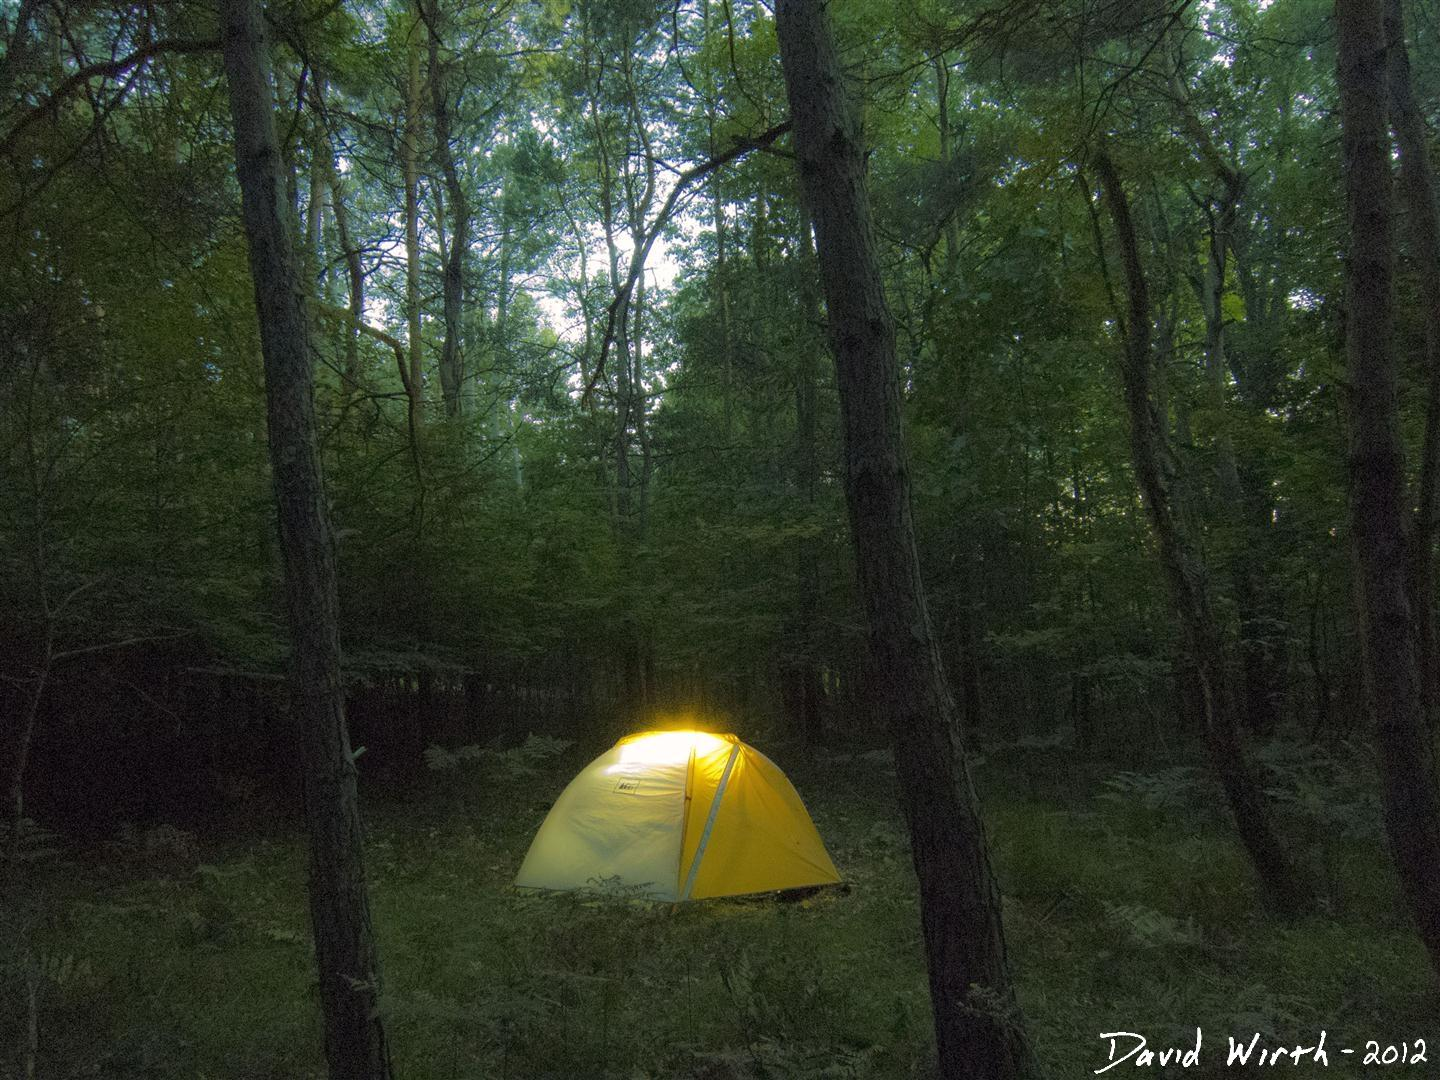 Camping and Hiking in the National Forest